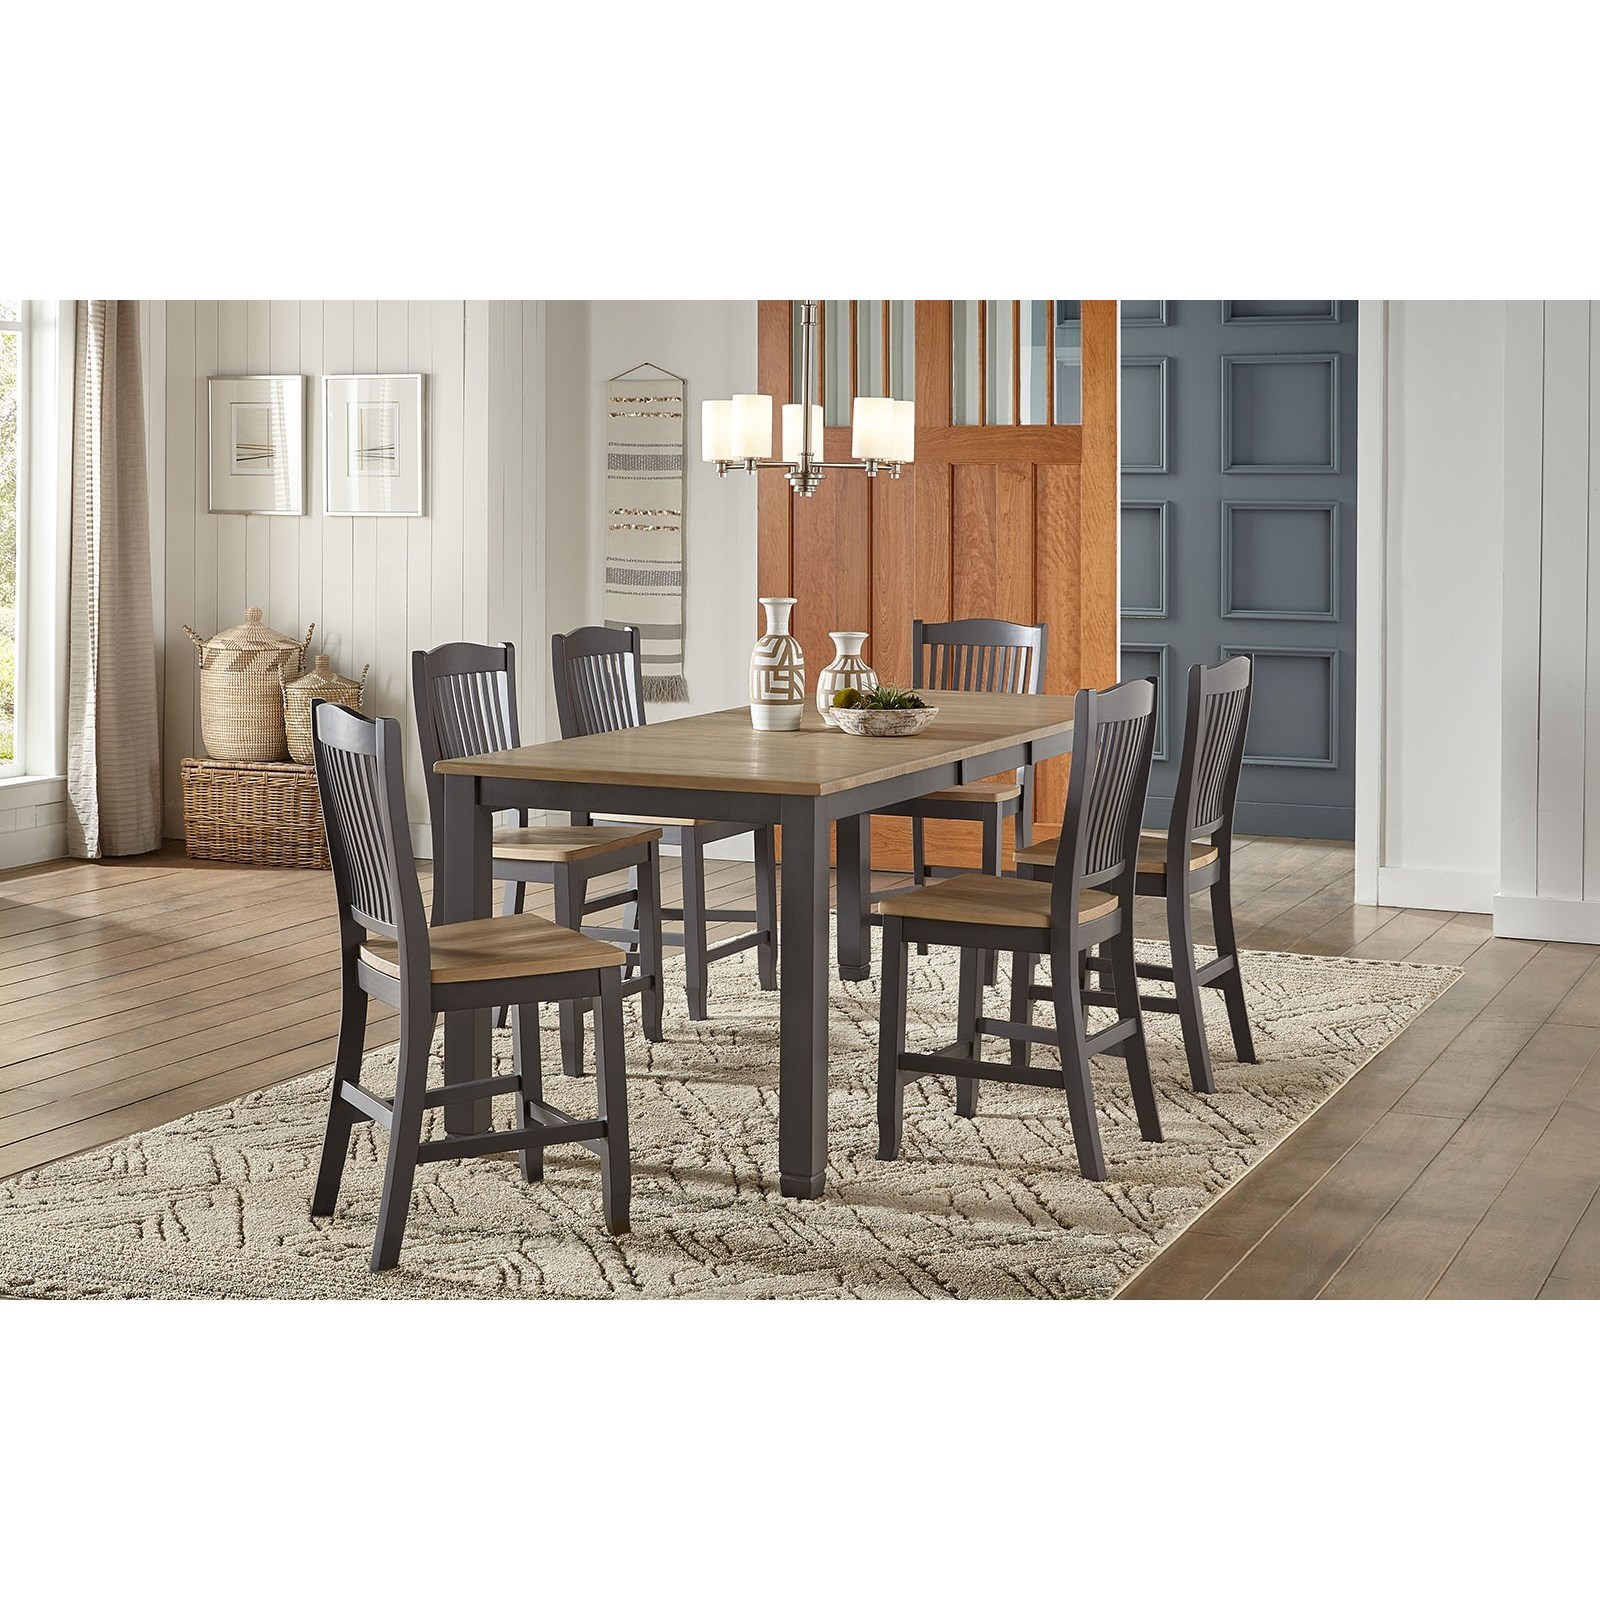 Port Townsend 7-Piece Gathering Height Table and Chair Set by AAmerica at Dinette Depot